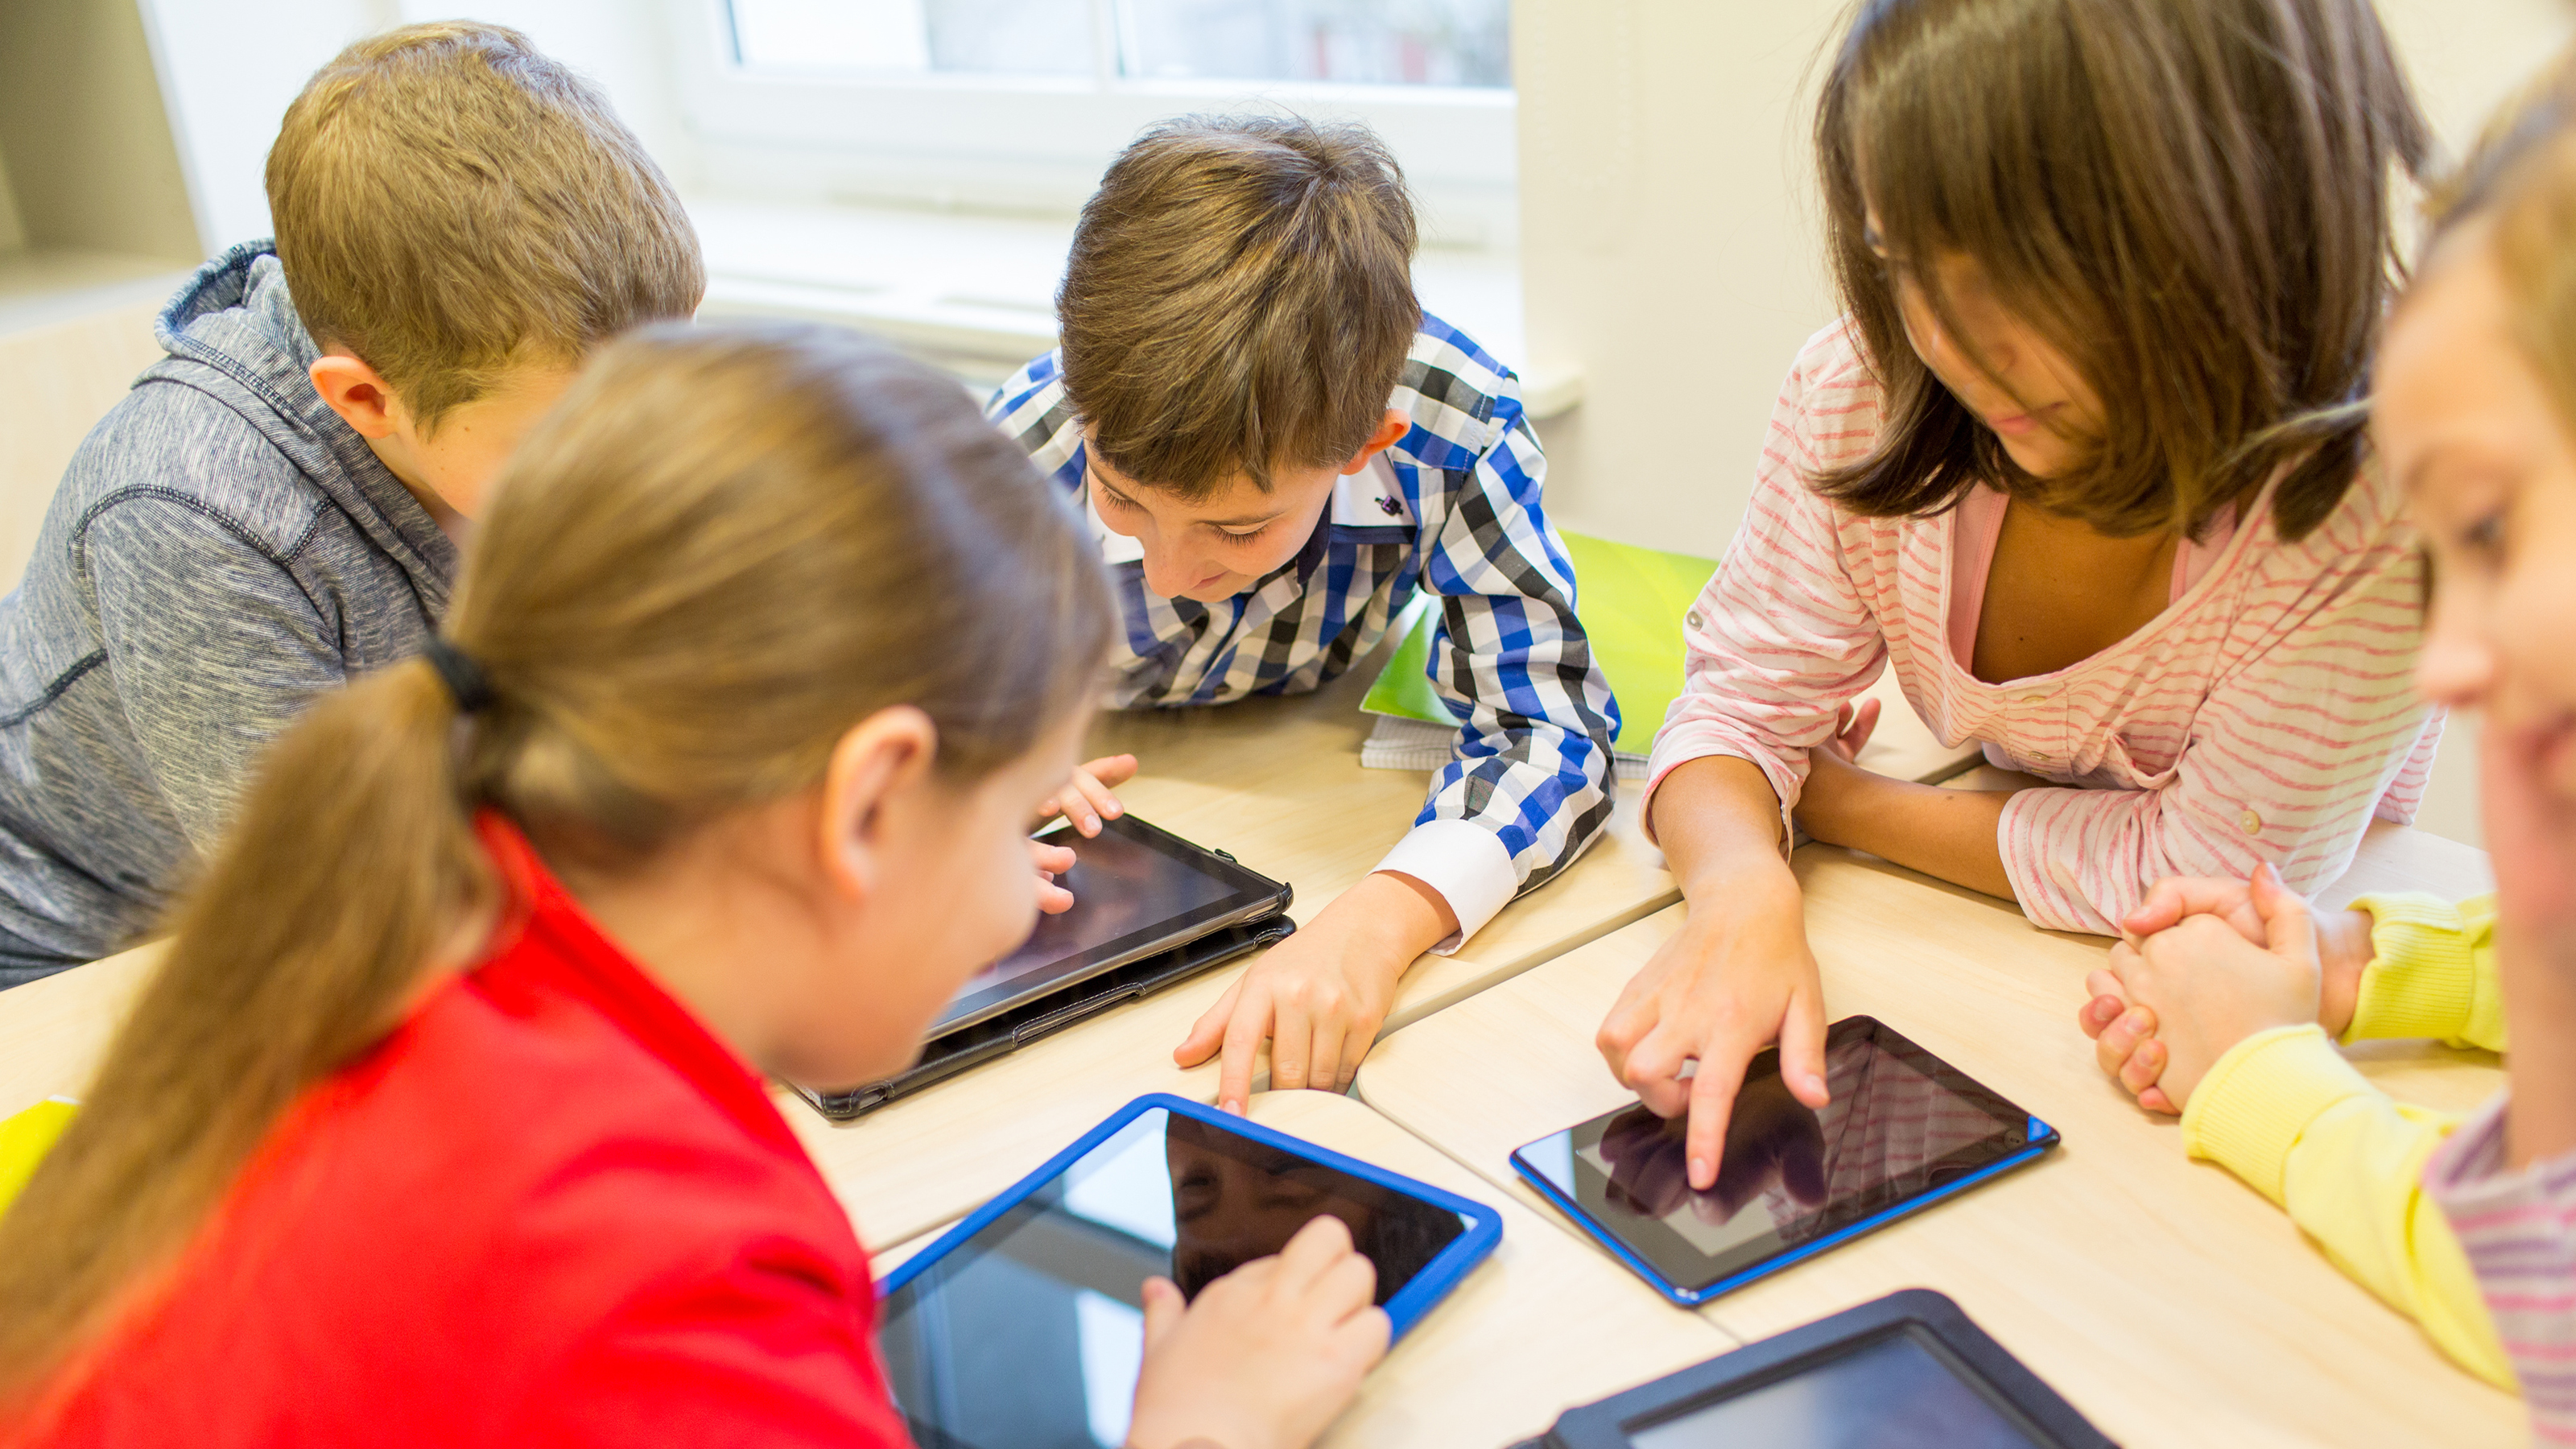 Kids learning with technology